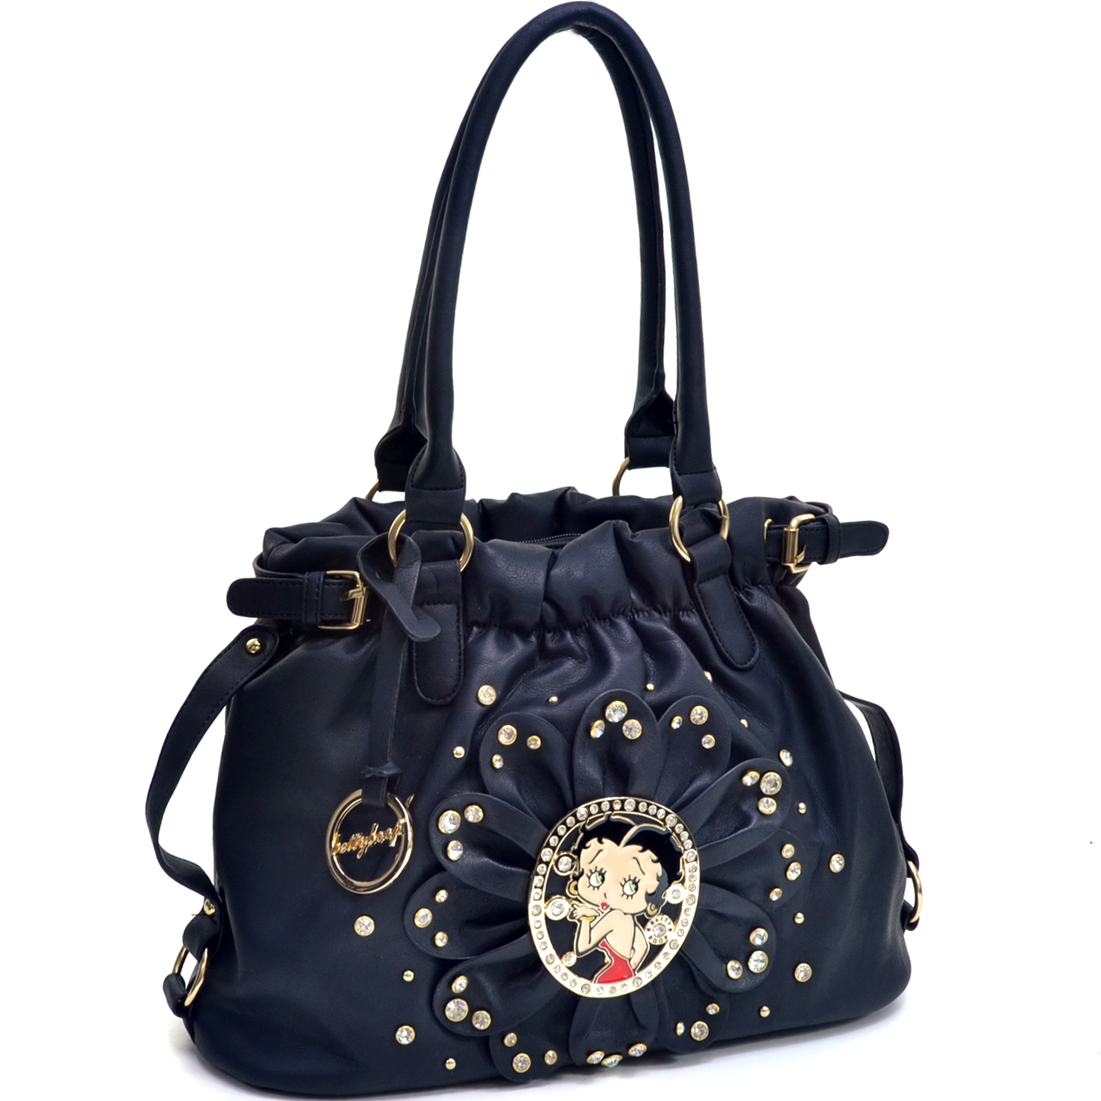 Rhinestone Studded Betty Boop Flat Bottom Hobo Bag with Adjustable Removable Shoulder Strap